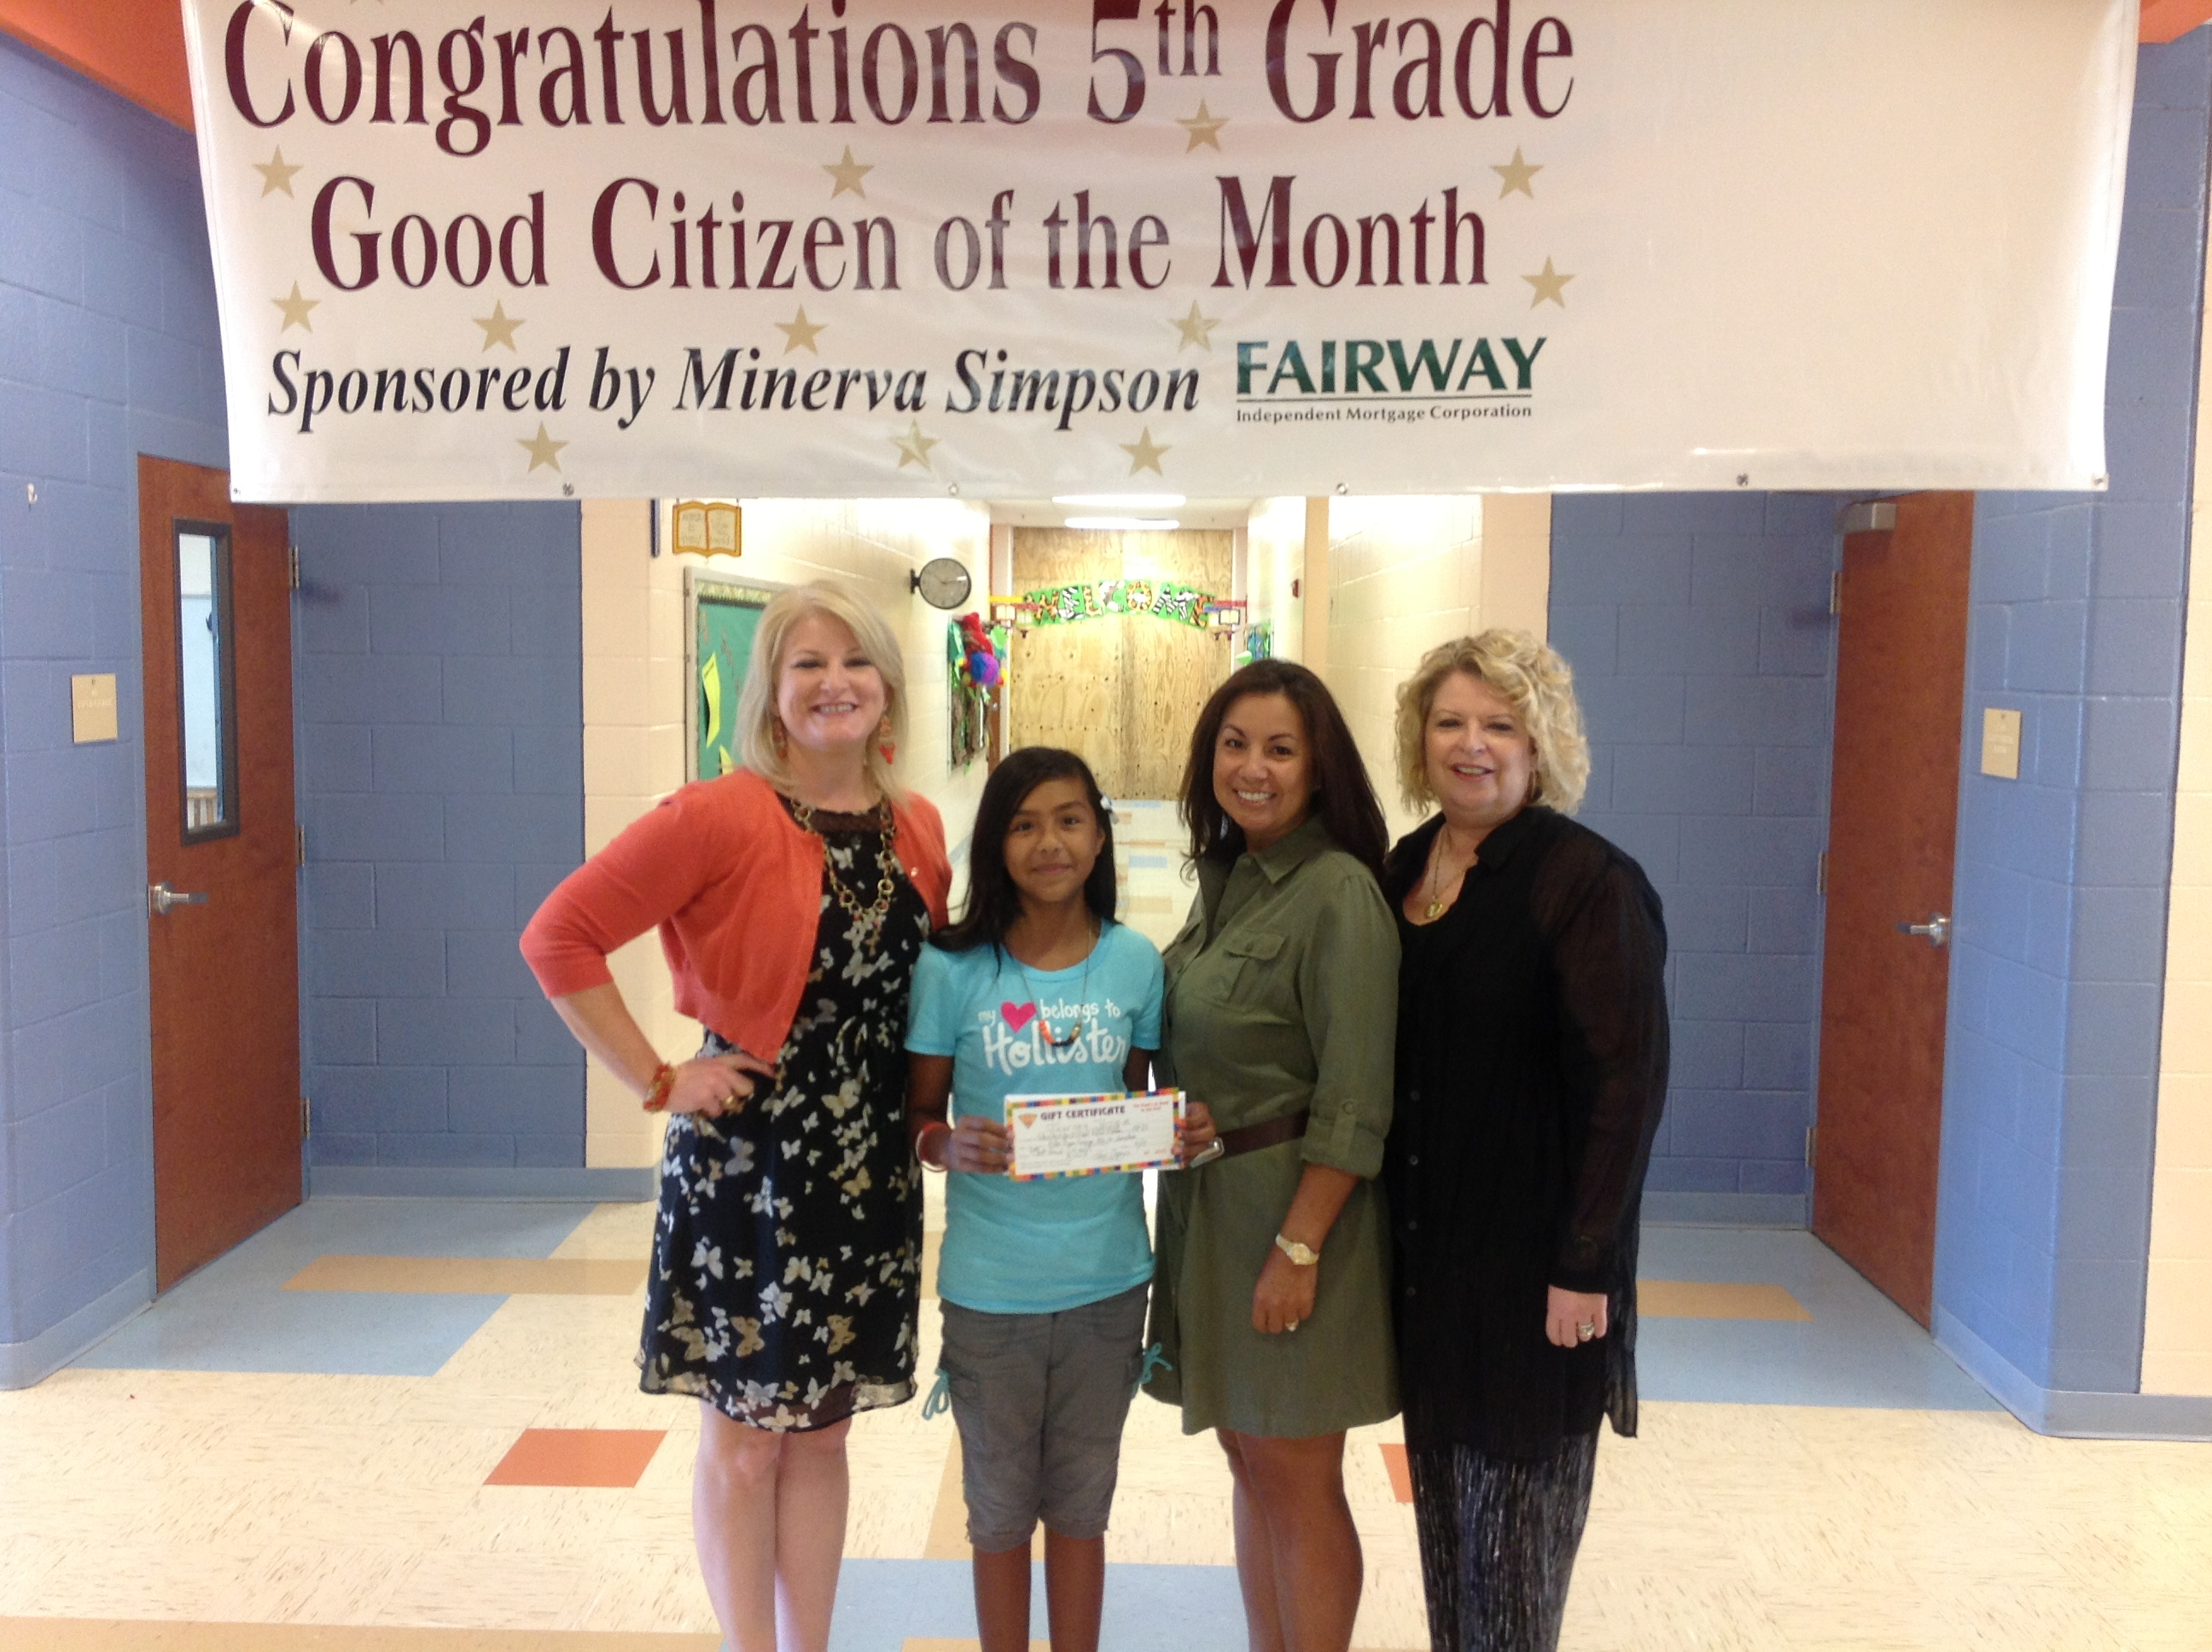 Journey Torrez wins 5th grade Student of the Month